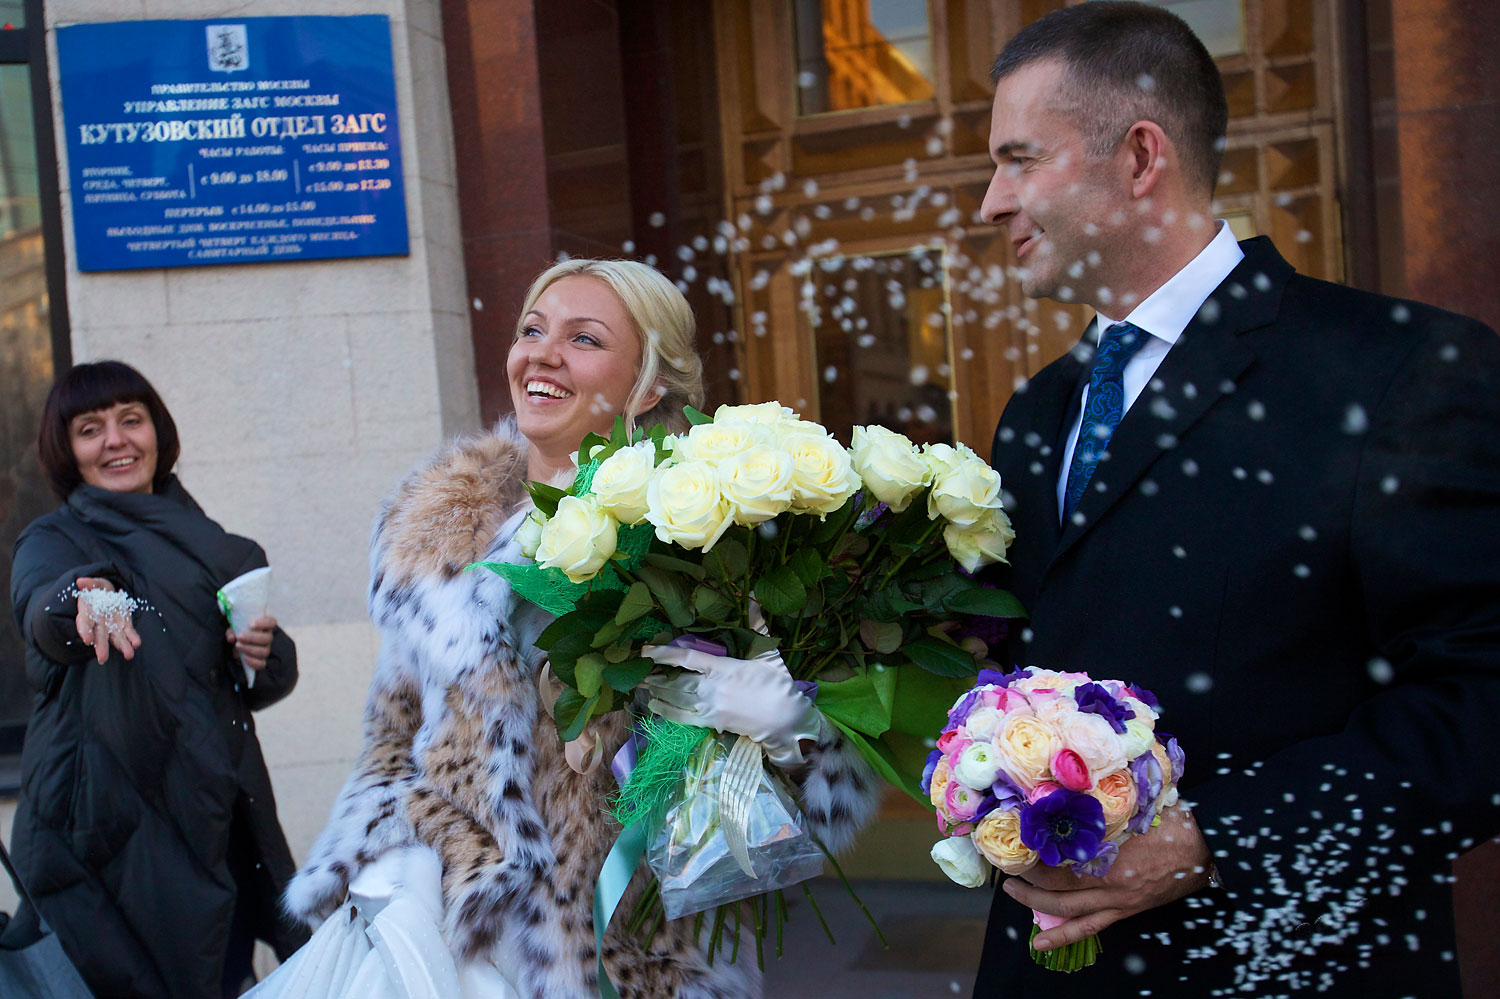 image: Olga and Gleb Danylyan are congratulated after getting married in Moscow.